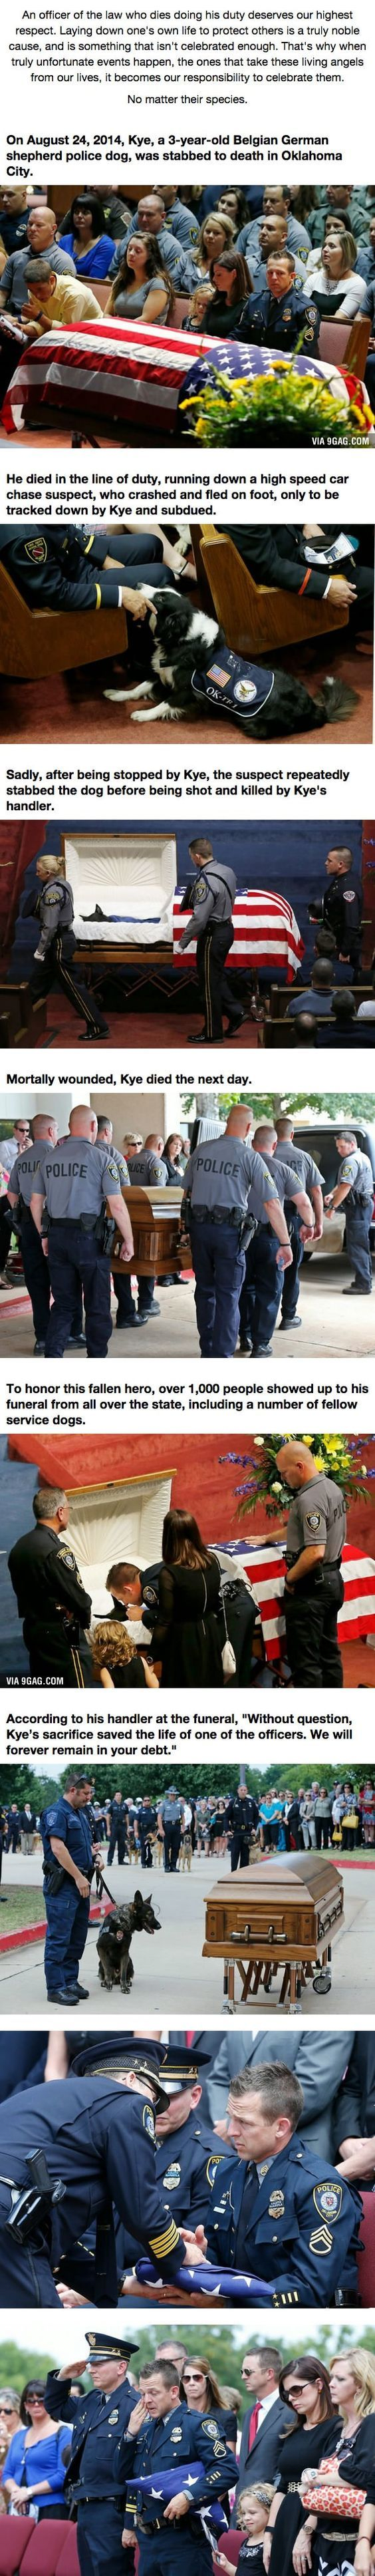 When This Hero Was Laid To Rest, He Was Truly Honored... And He's A Dog.